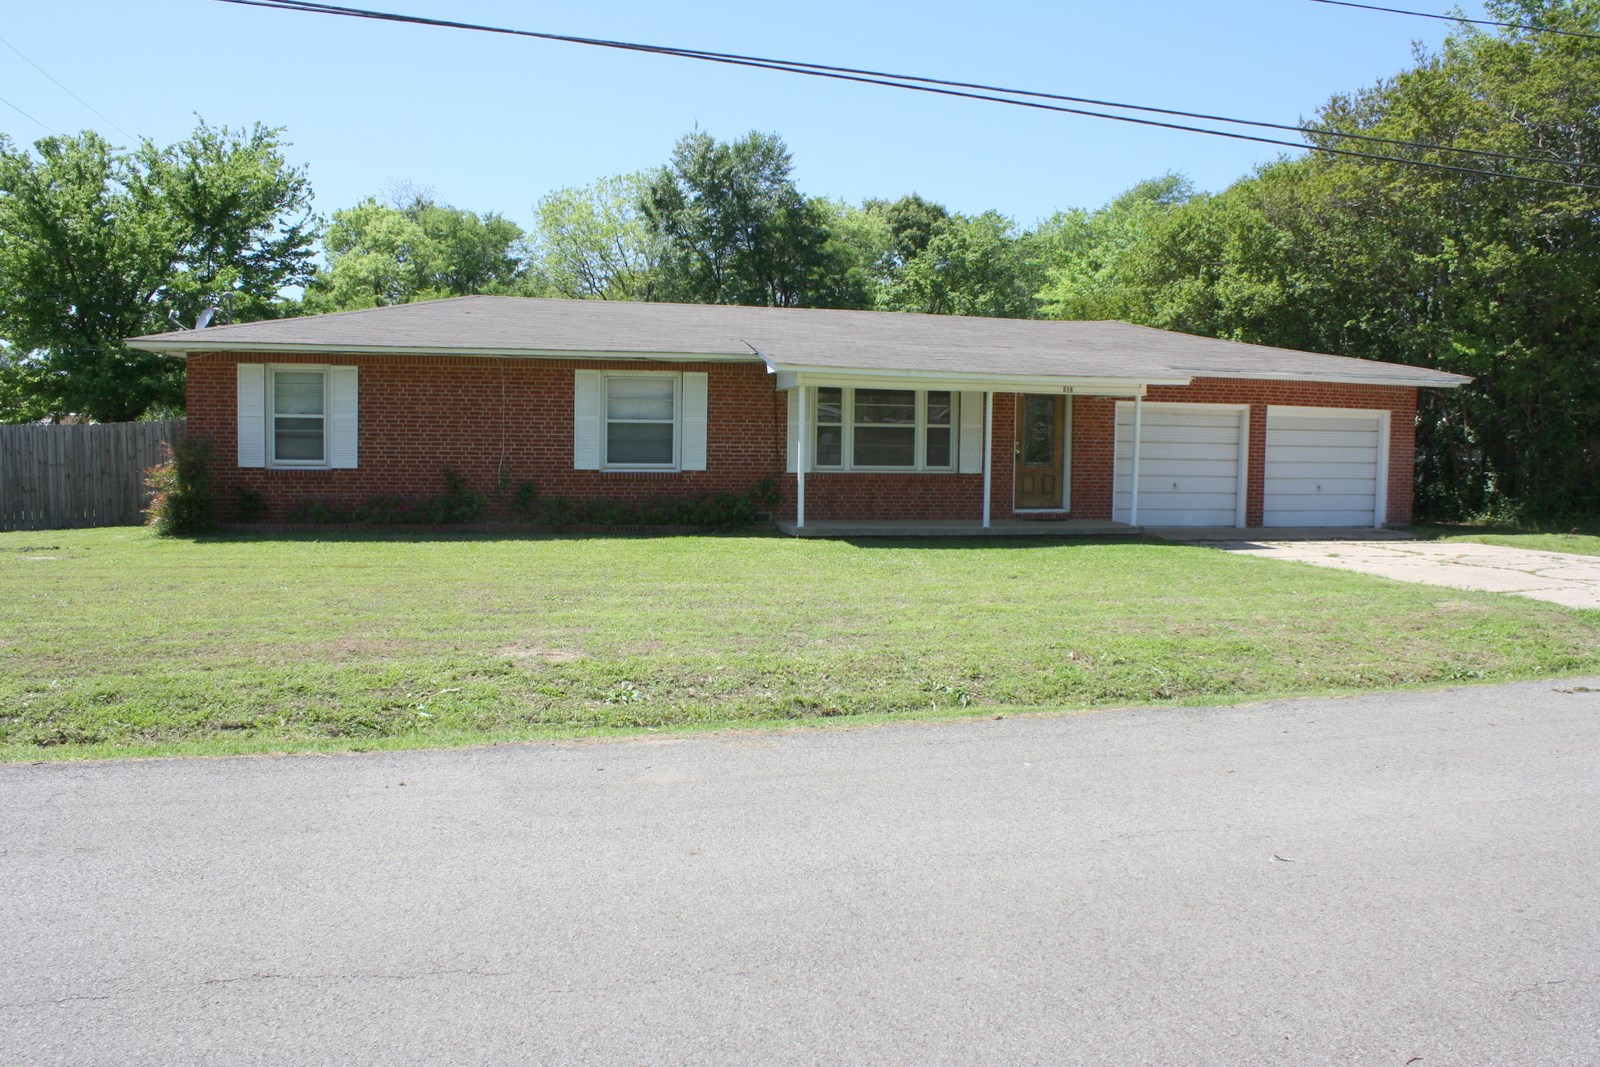 4 BEDROOM 2 BATHROOM BRICK HOME MOVE IN READY WINNSBORO TX